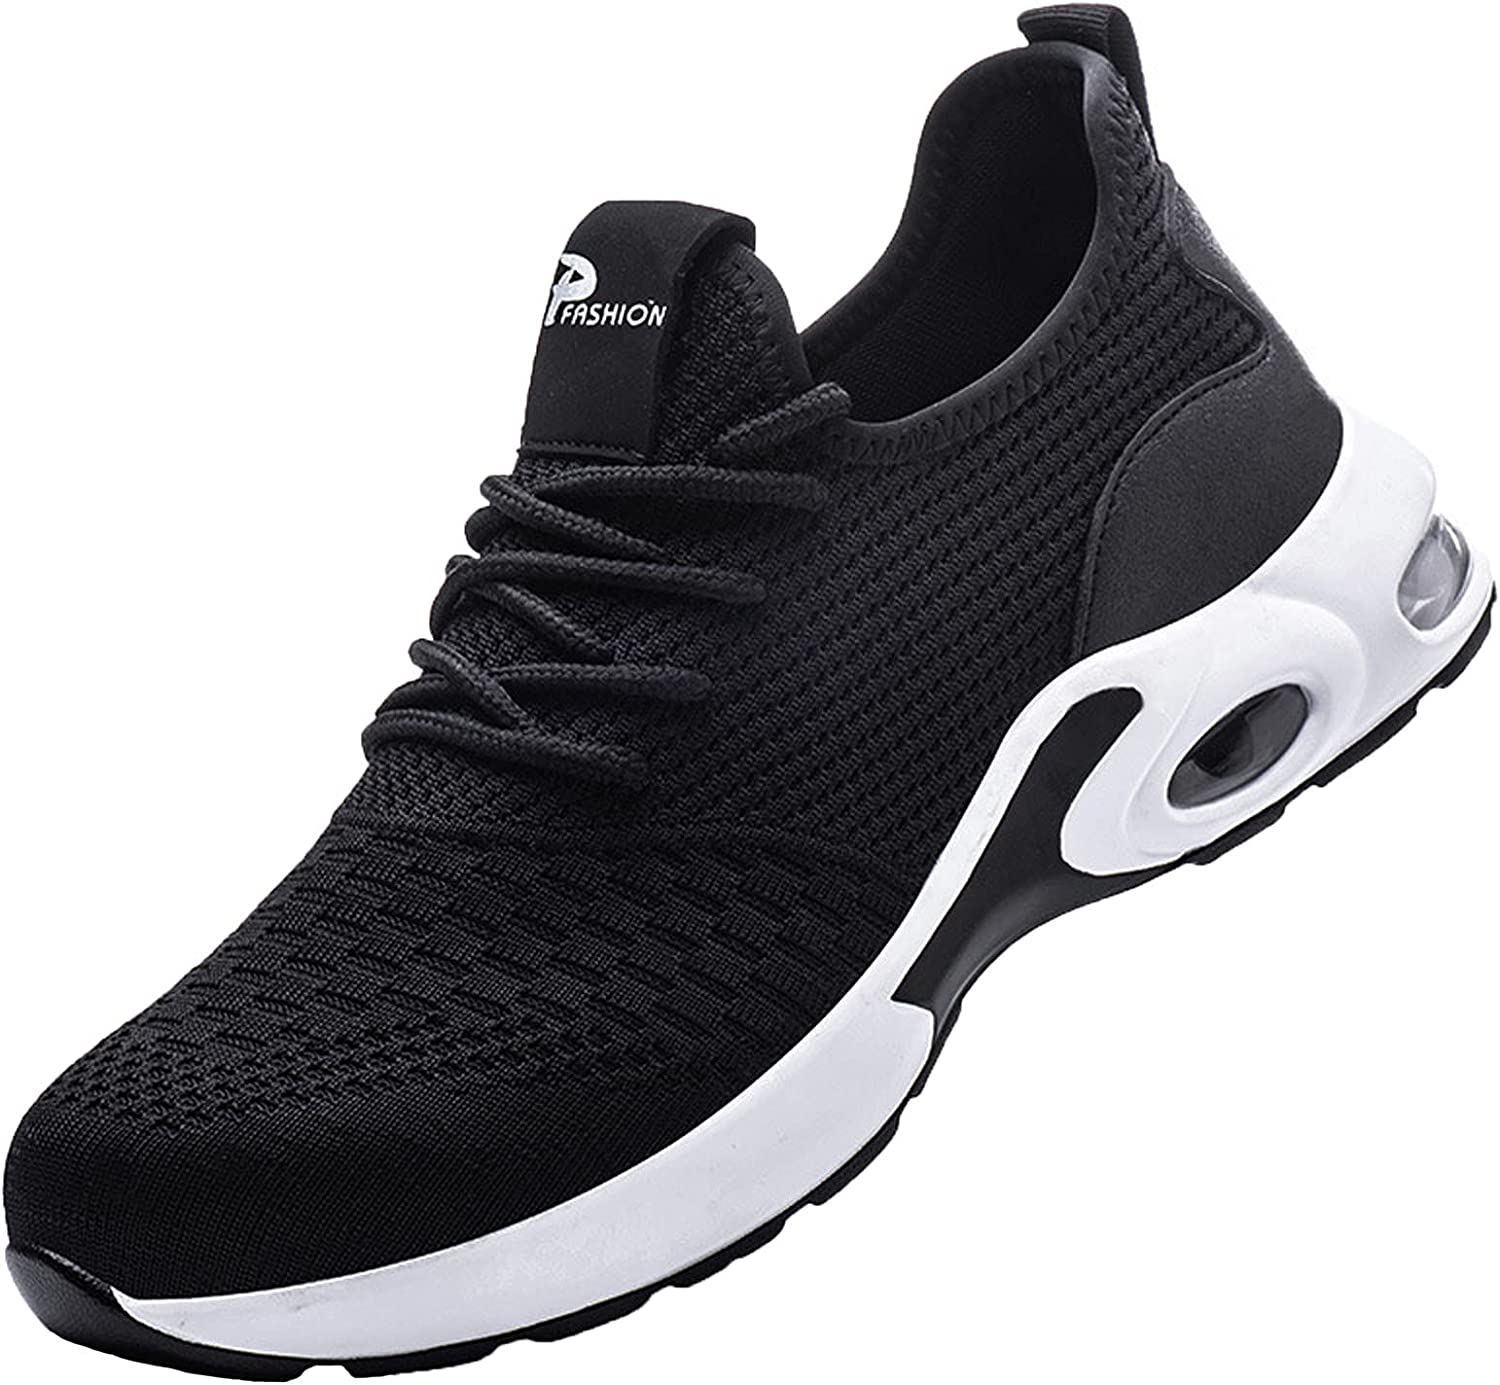 Autumn New Mens Fashion Casual Shoes Women'S Outdoor Solid Color Lace Up Working Thick Bottom Walking Sneakers Mesh Breathable No-Slip Lightweight Trainers Running Sports Shoes